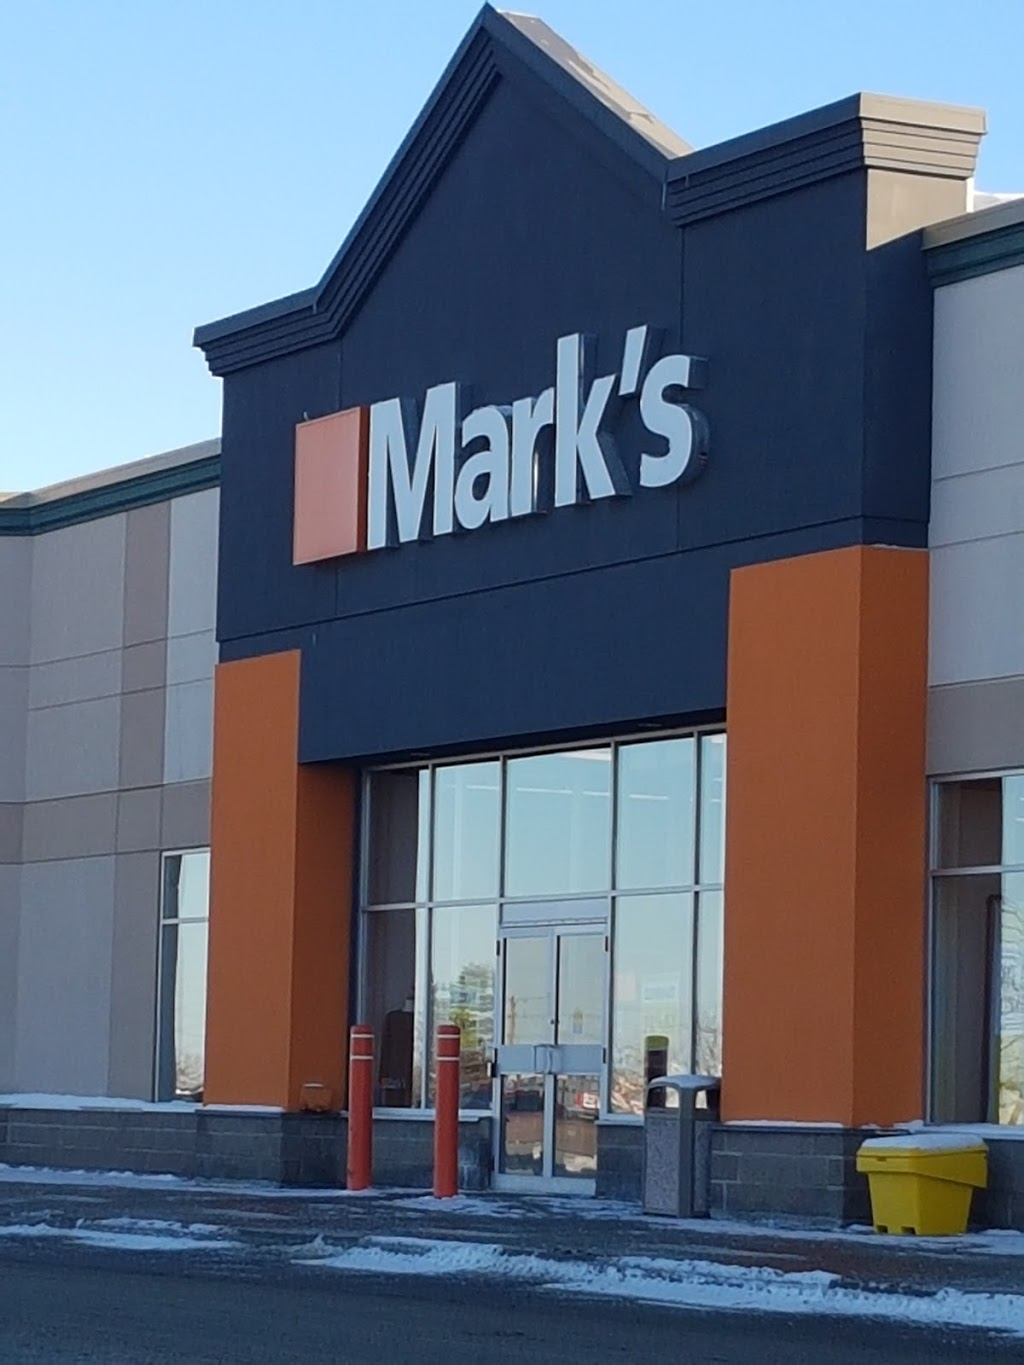 Marks | clothing store | 1066 Barrydowne Rd, Sudbury, ON P3A 3V3, Canada | 7055604600 OR +1 705-560-4600